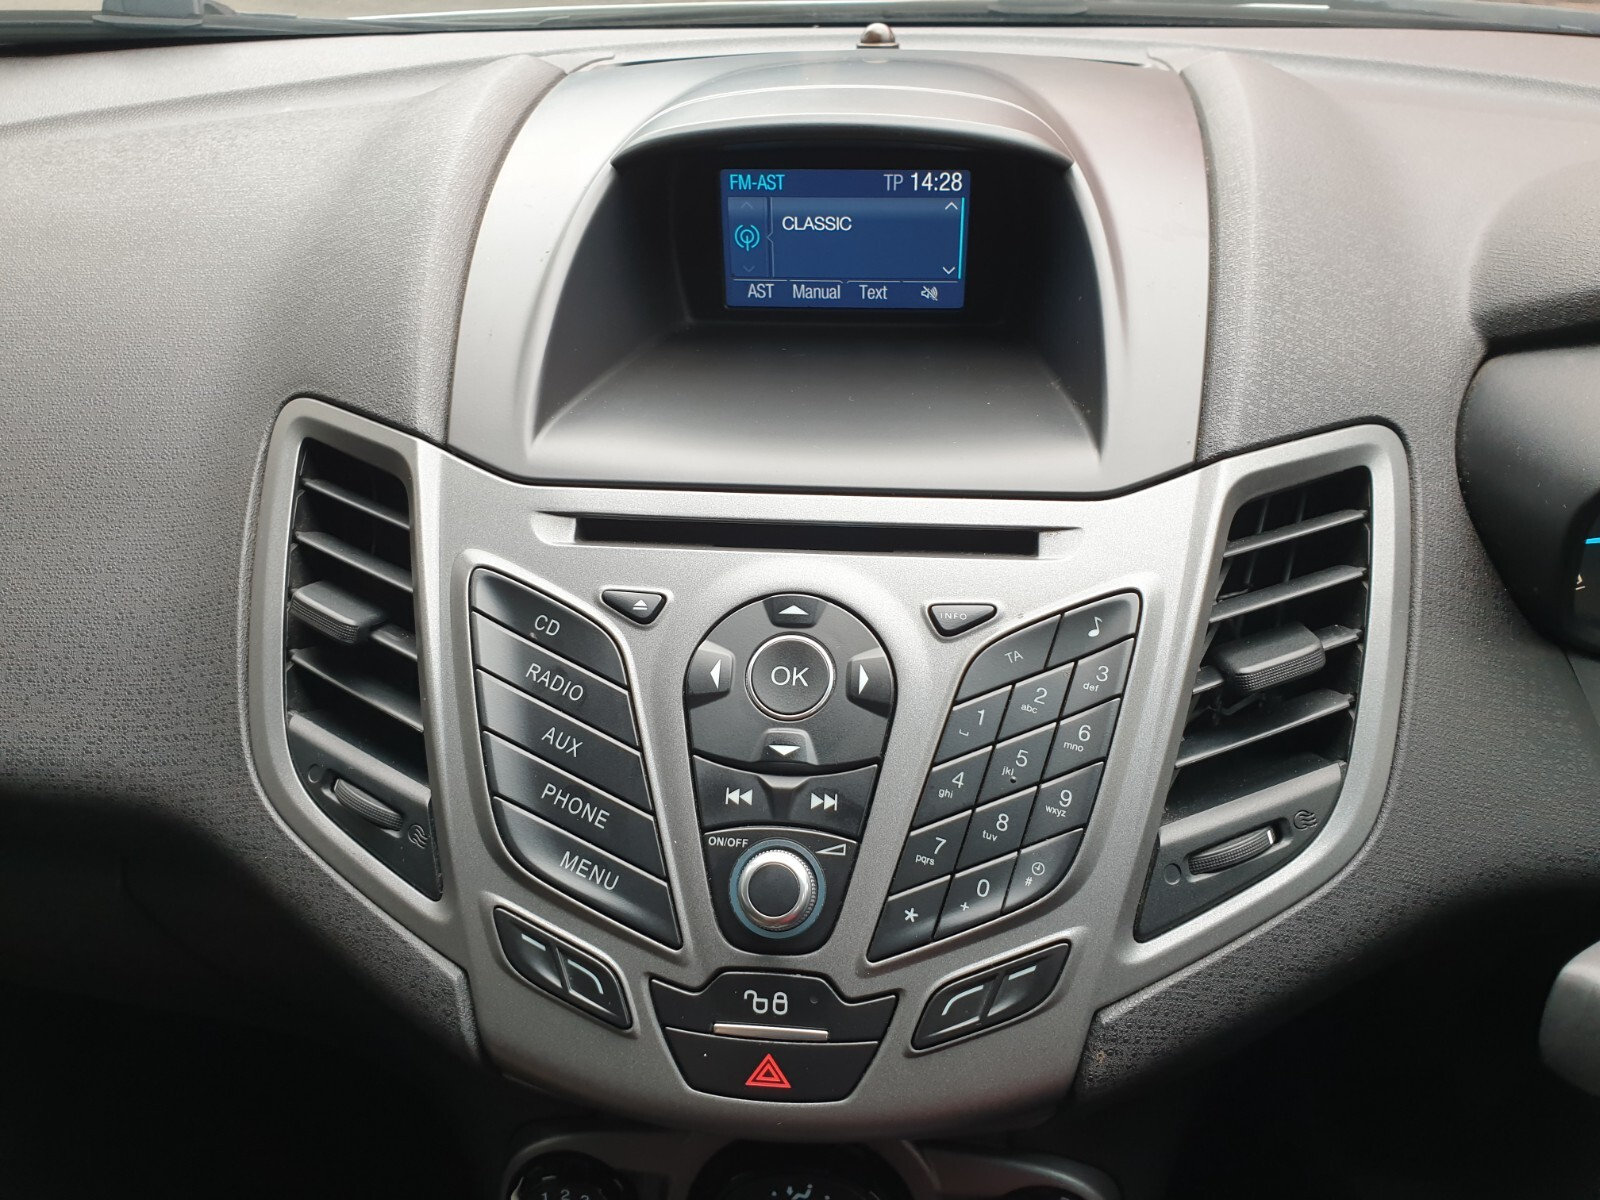 FORD 1.4 AMBIENTE 5 Dr Johannesburg 13327079